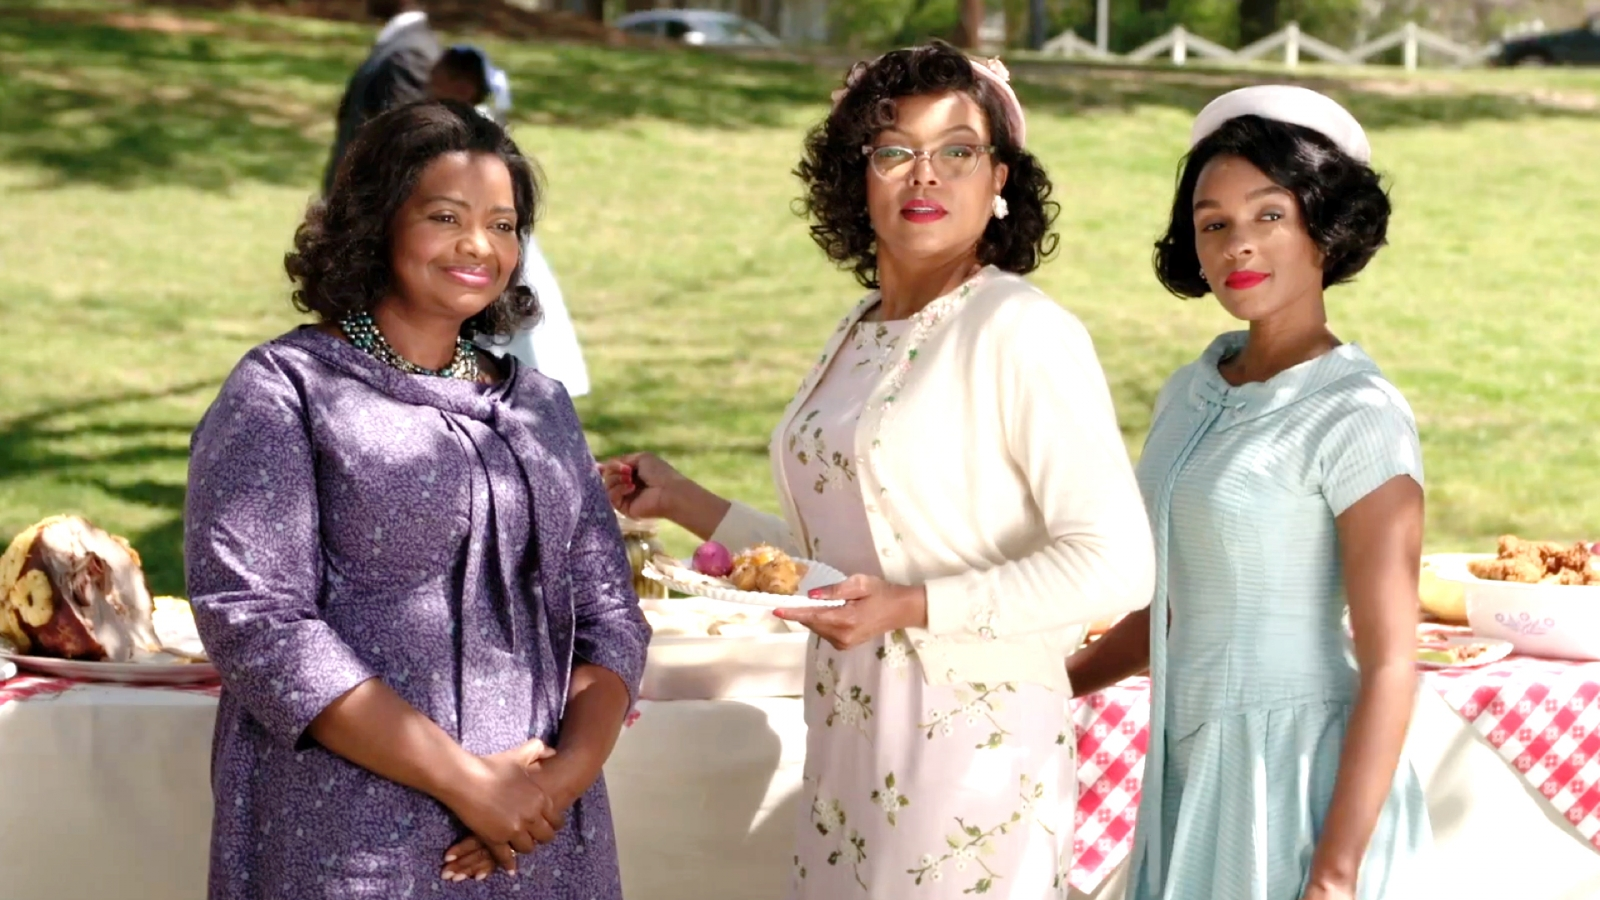 Hidden Figures: The real story of Katherine G Johnson, Dorothy Vaughan and Mary Jackson